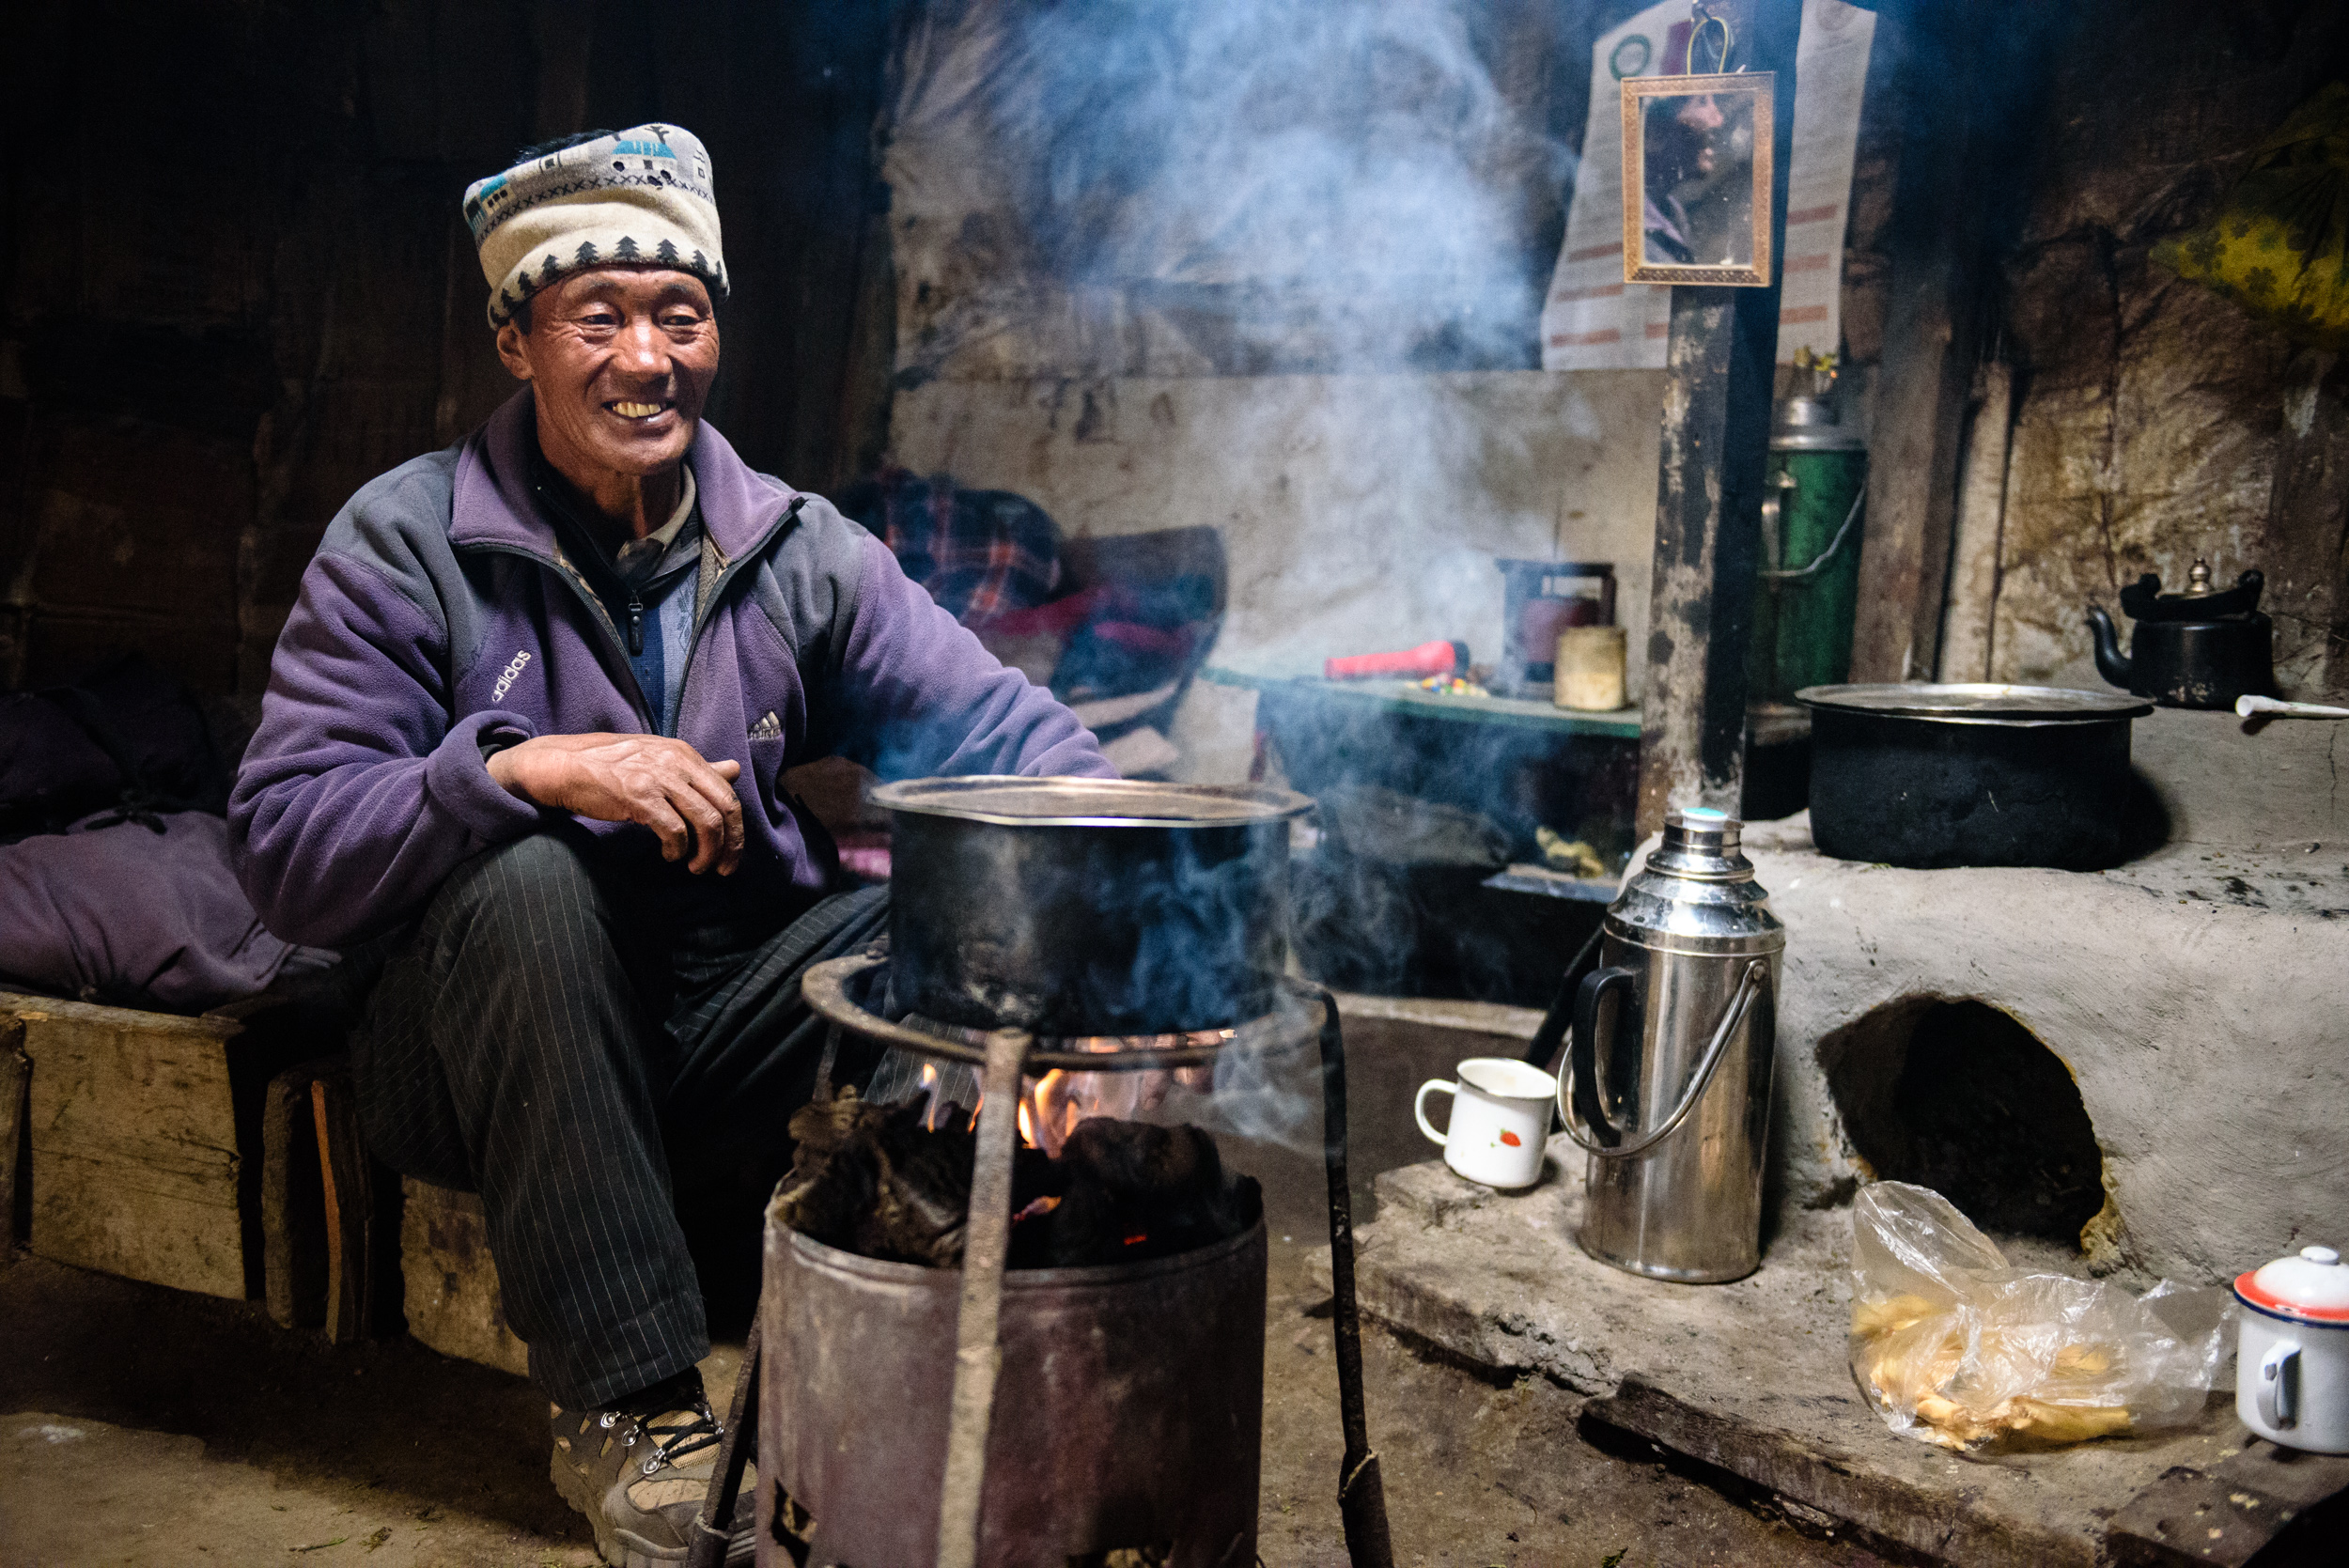 Gya, inside his hut in the Lashar Valley. Three of his six children died from illness. Now, his only son is studying in Gangtok, one daughter serves in the police force in Bangalore, and one daughter has chosen to stay with him and his wife and their yaks. She's the rare individual from her generation who prefers traditional Dokpa life. Gya's wife is a Lachenpa by birth, but she now identifies as a Dokpa; Lachenpa/Dokpa intermarriage is not uncommon.